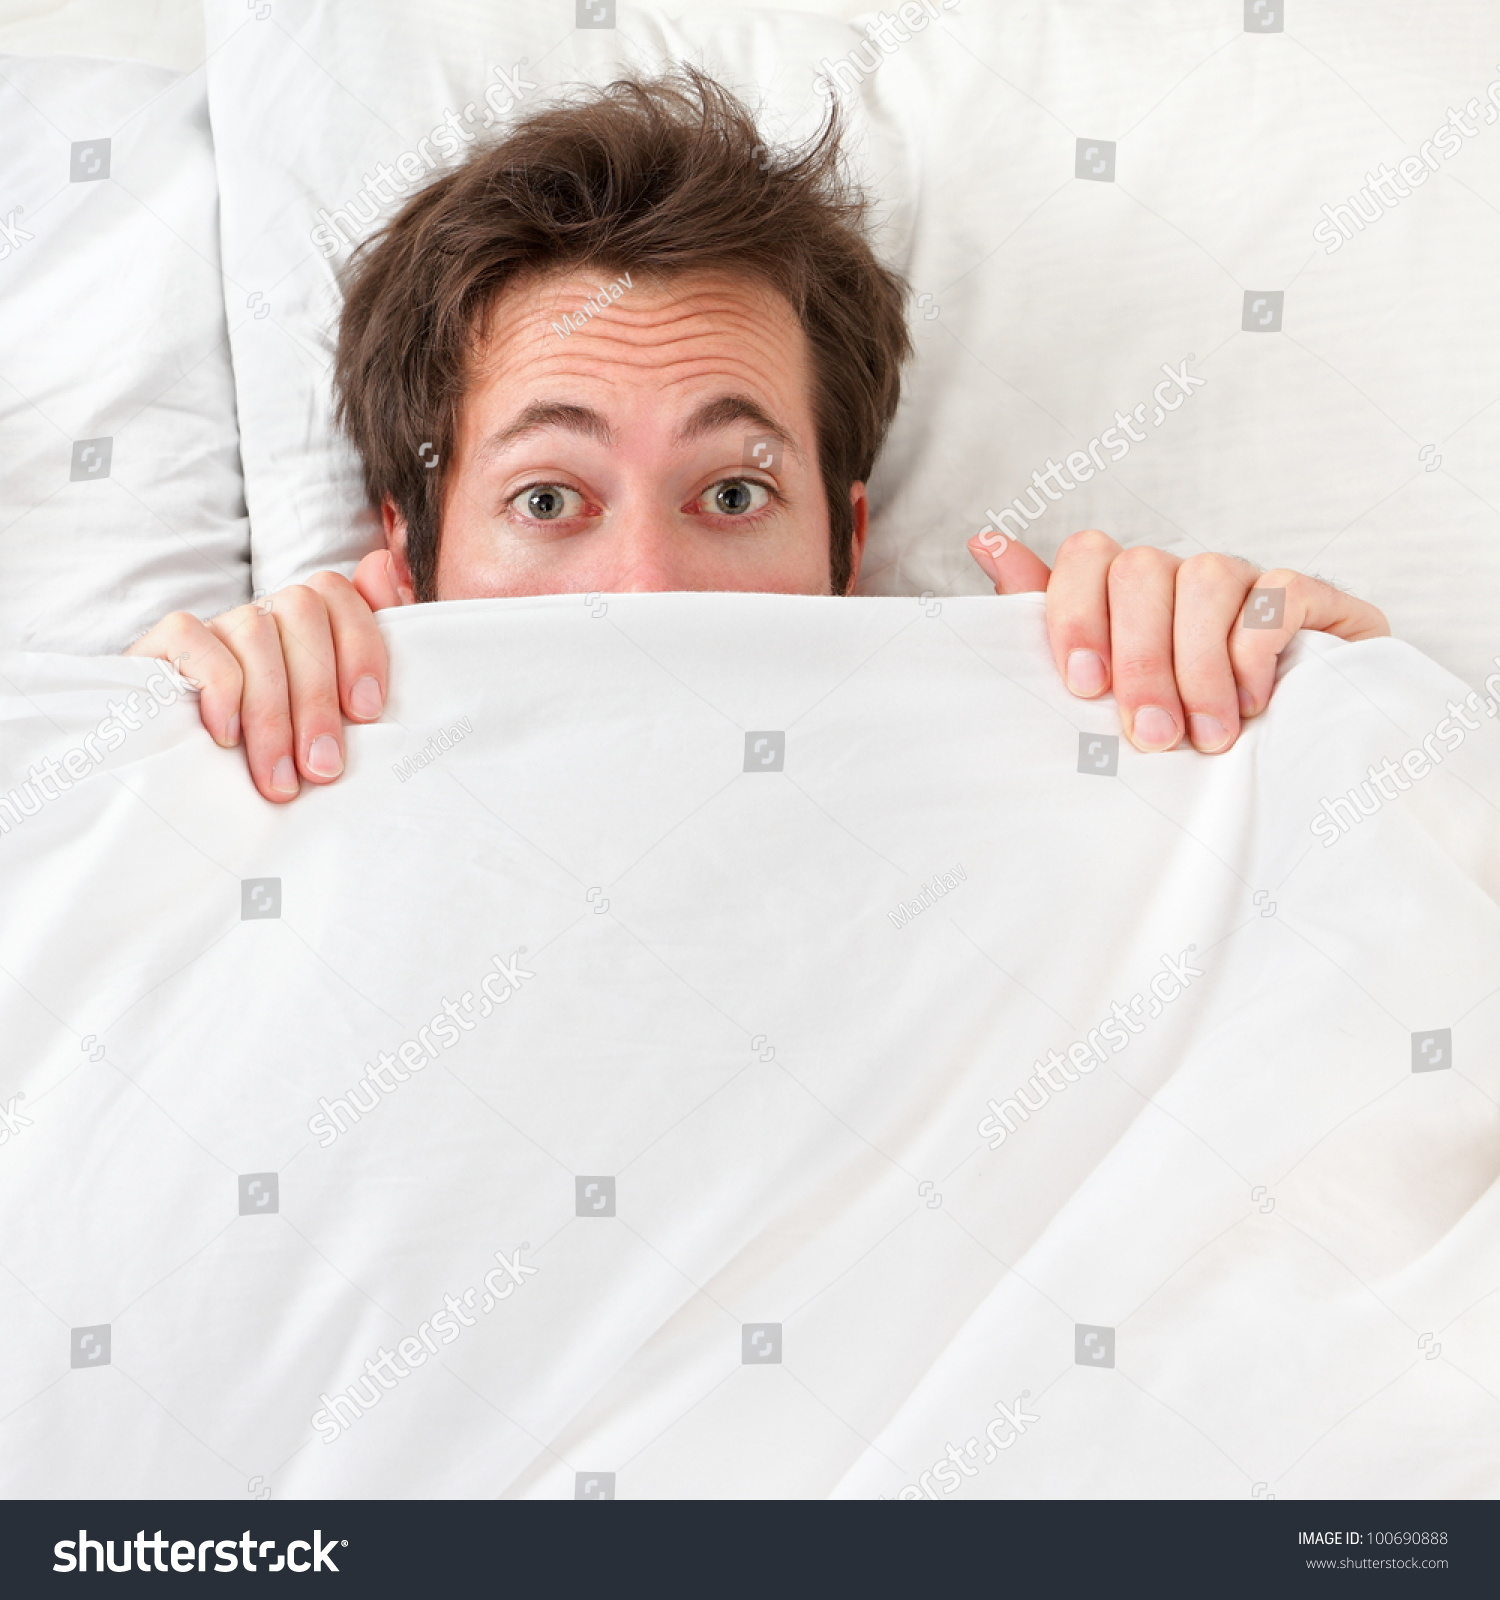 Funny bed sheets - Scared Man Hiding In Bed Under The Sheets Funny Concept Image With Young Caucasian Male